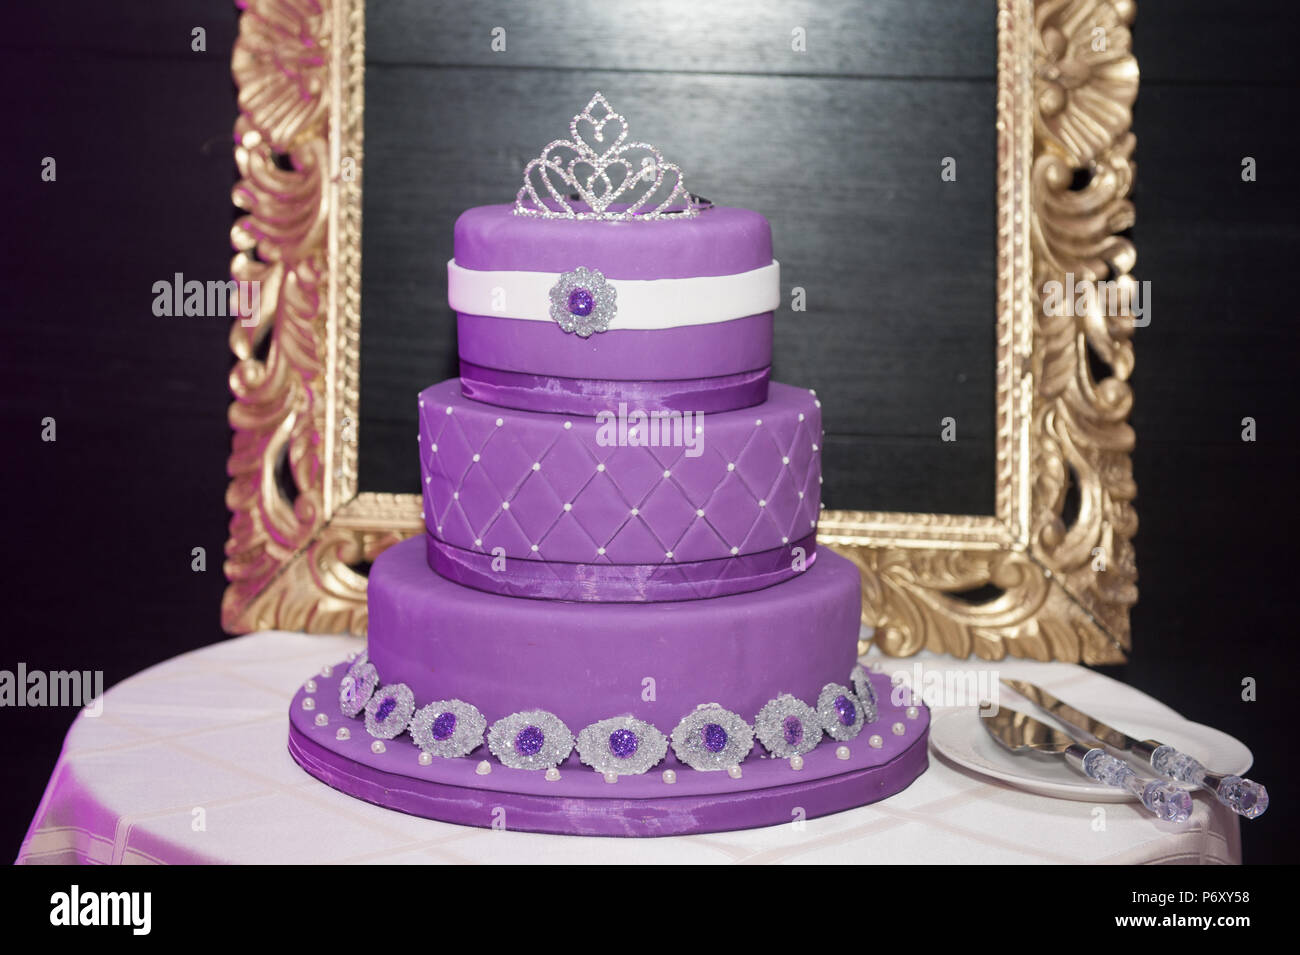 Sweet Sixteen Birthday Cake On A Cake Stand With Background A Picture Frame Stock Photo Alamy